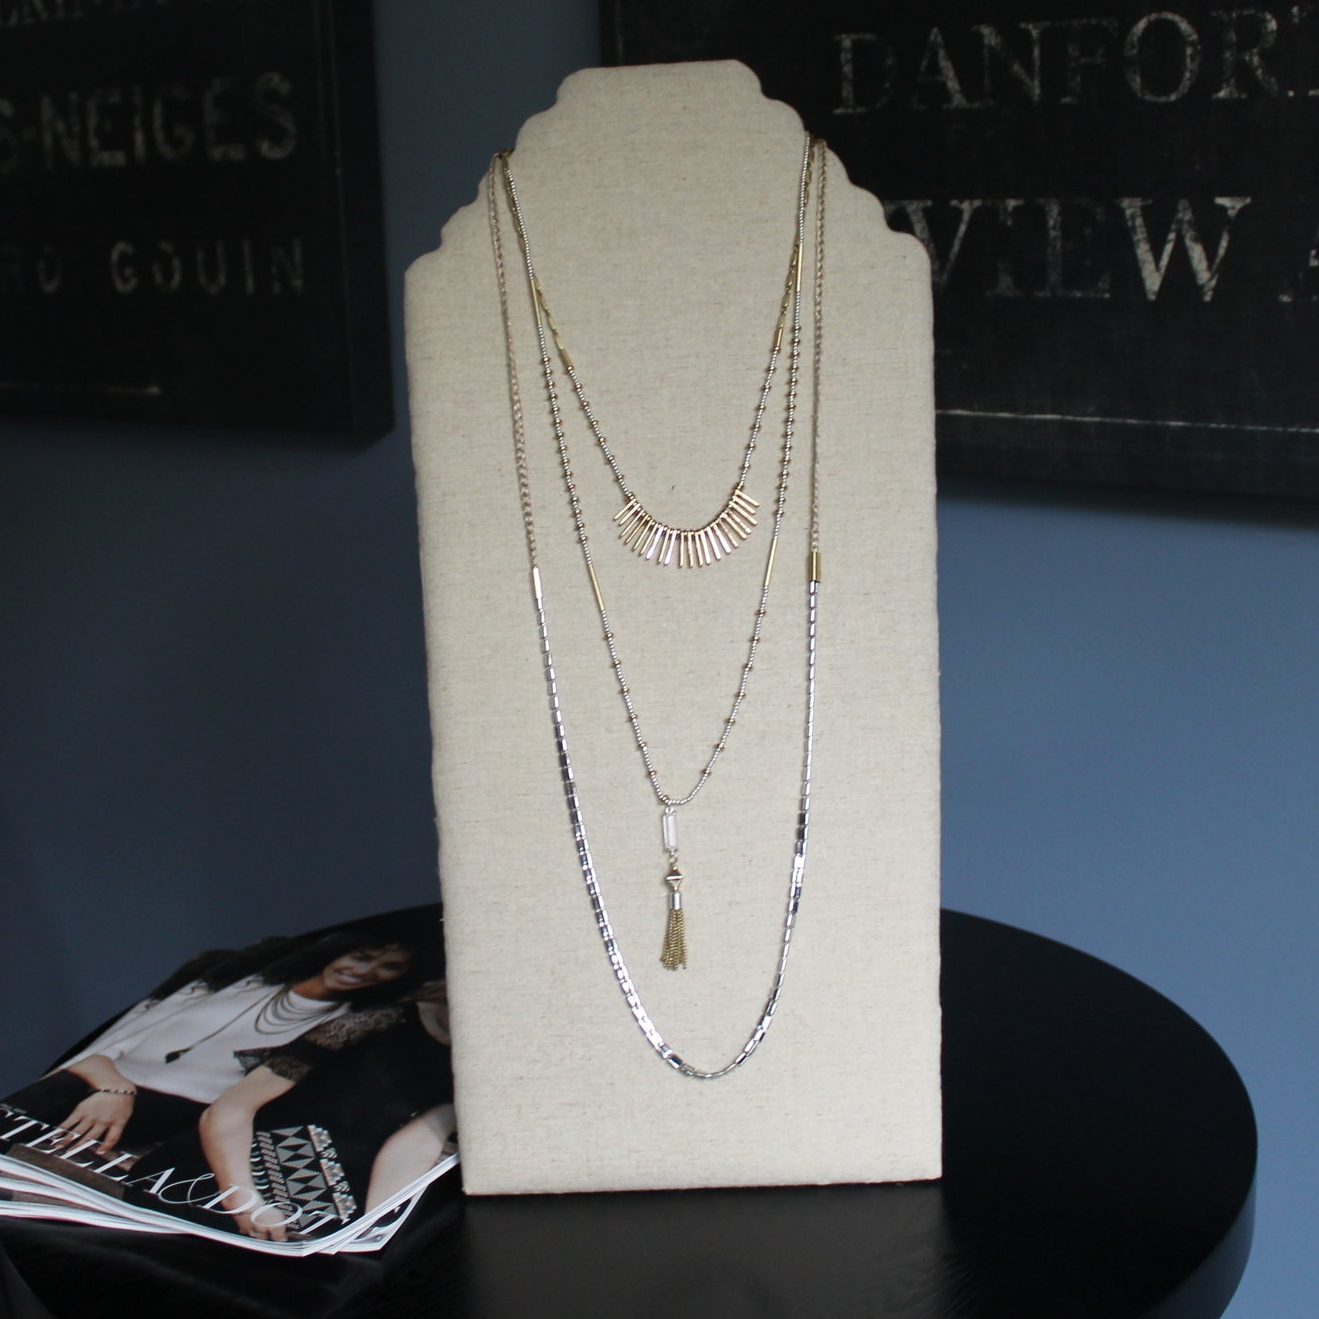 Although this is sold as 1 piece, each strand can be worn separately, so you can wear as many or as few strands as you want!